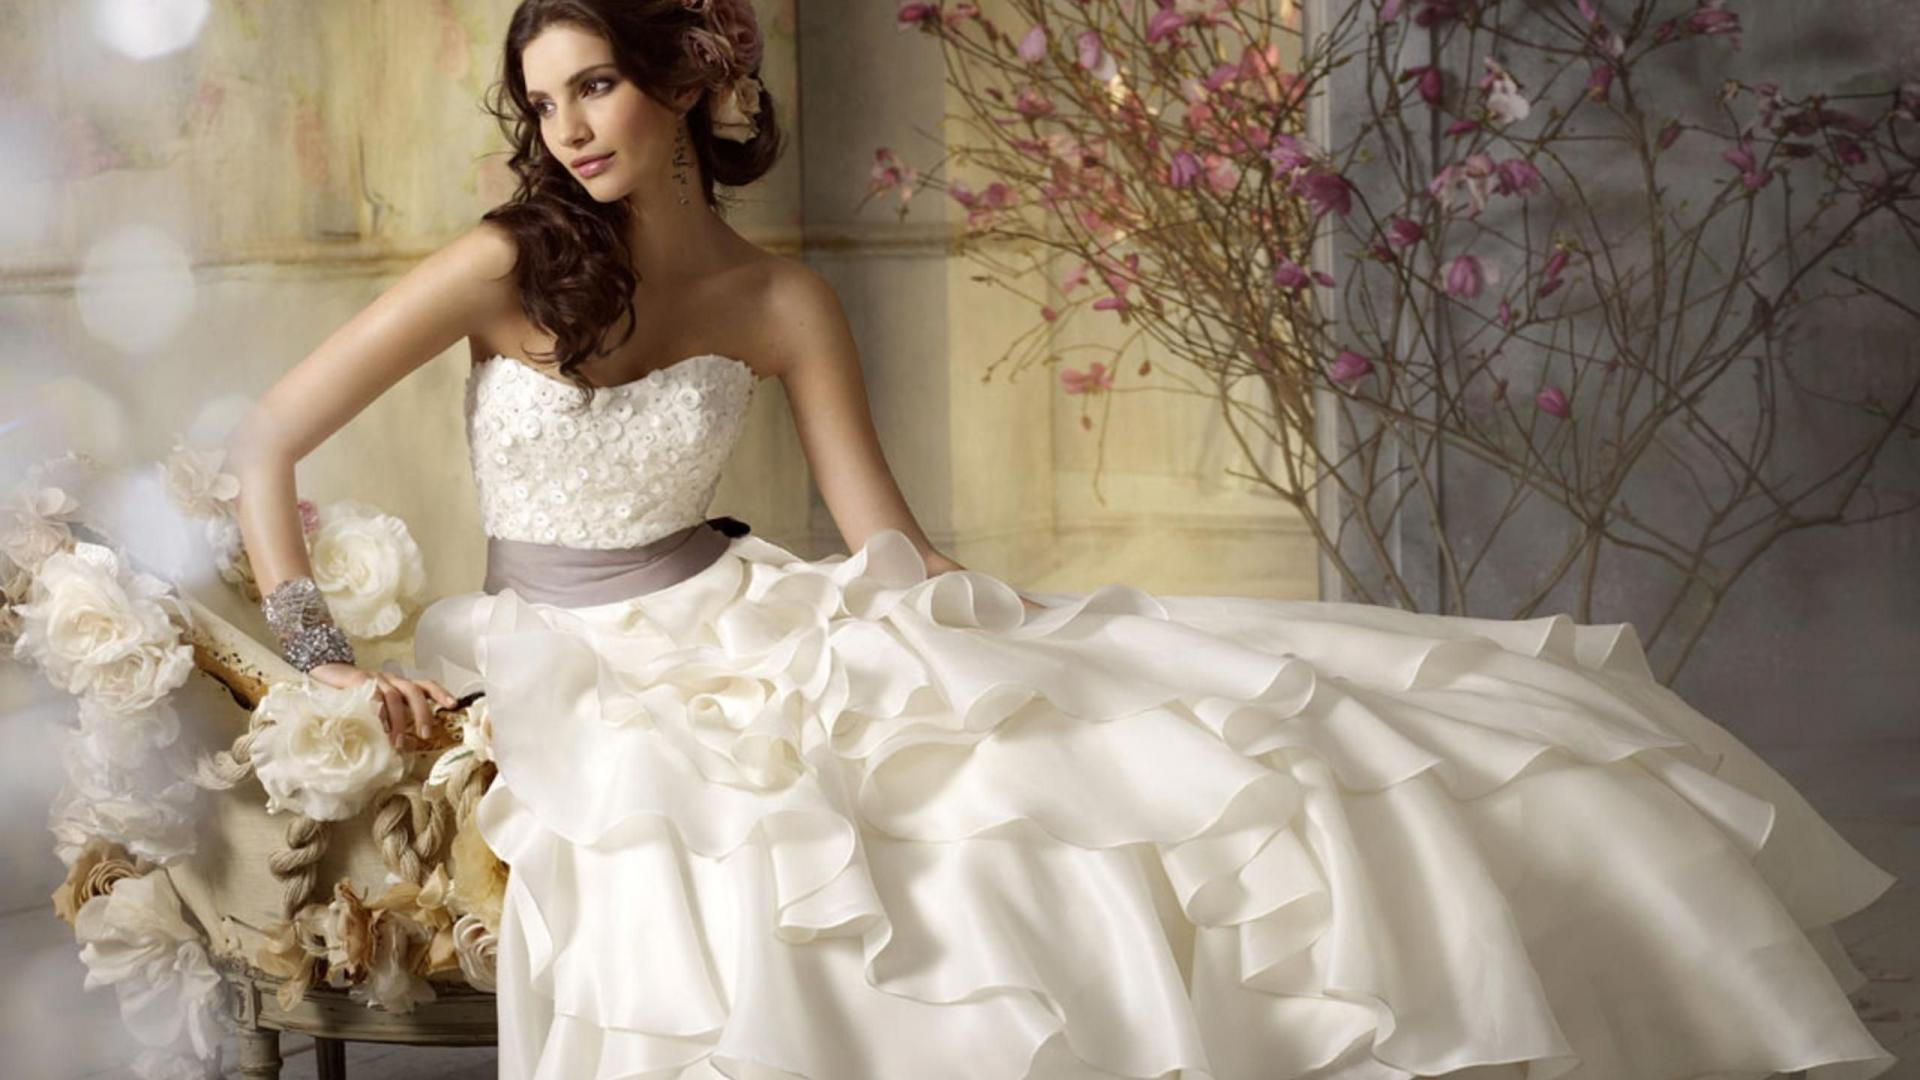 The Beautiful Bride Wedding Dress 109